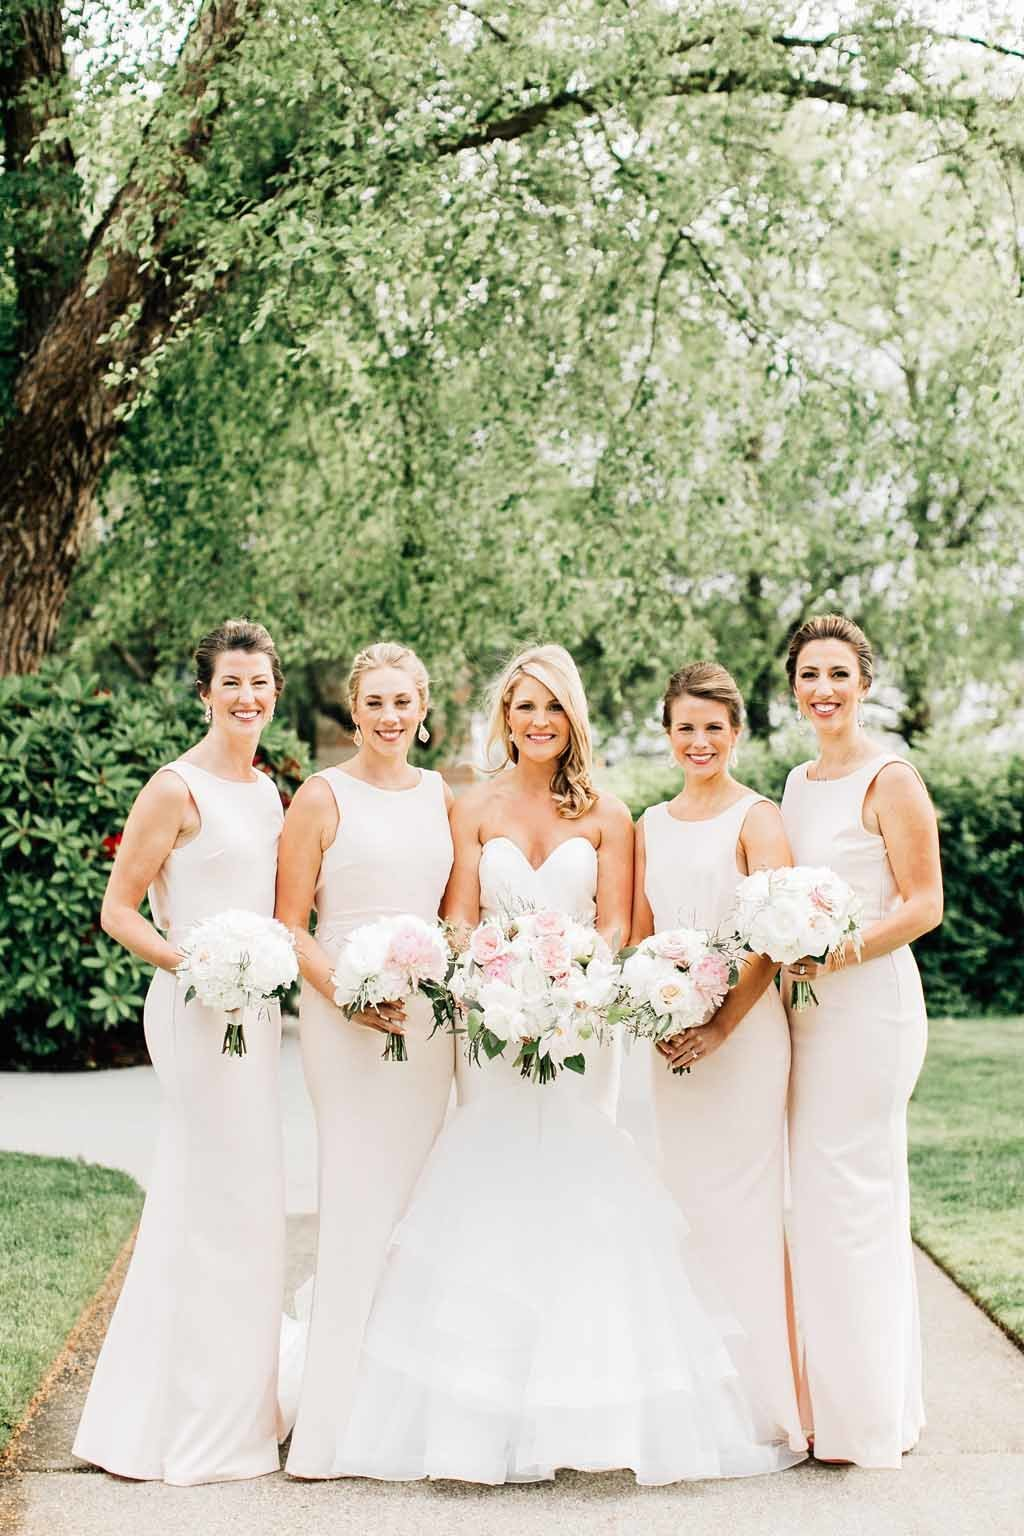 Elegant bridal party dressed in all white with white and blush bouquets.